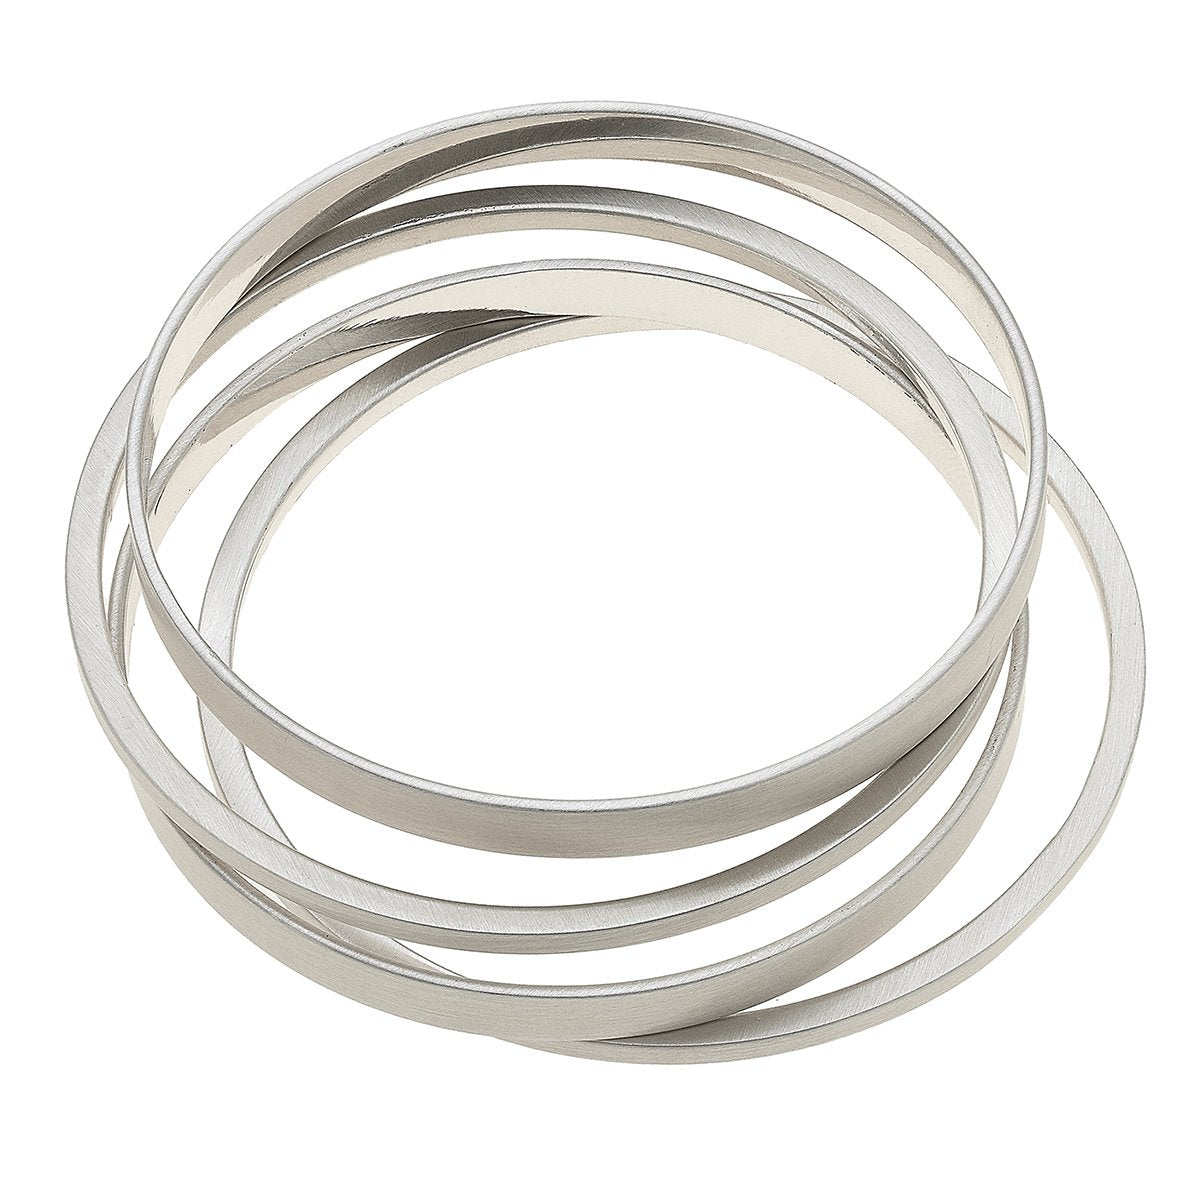 Cleo Bangle Stack In Satin Silver (Set Of 4)